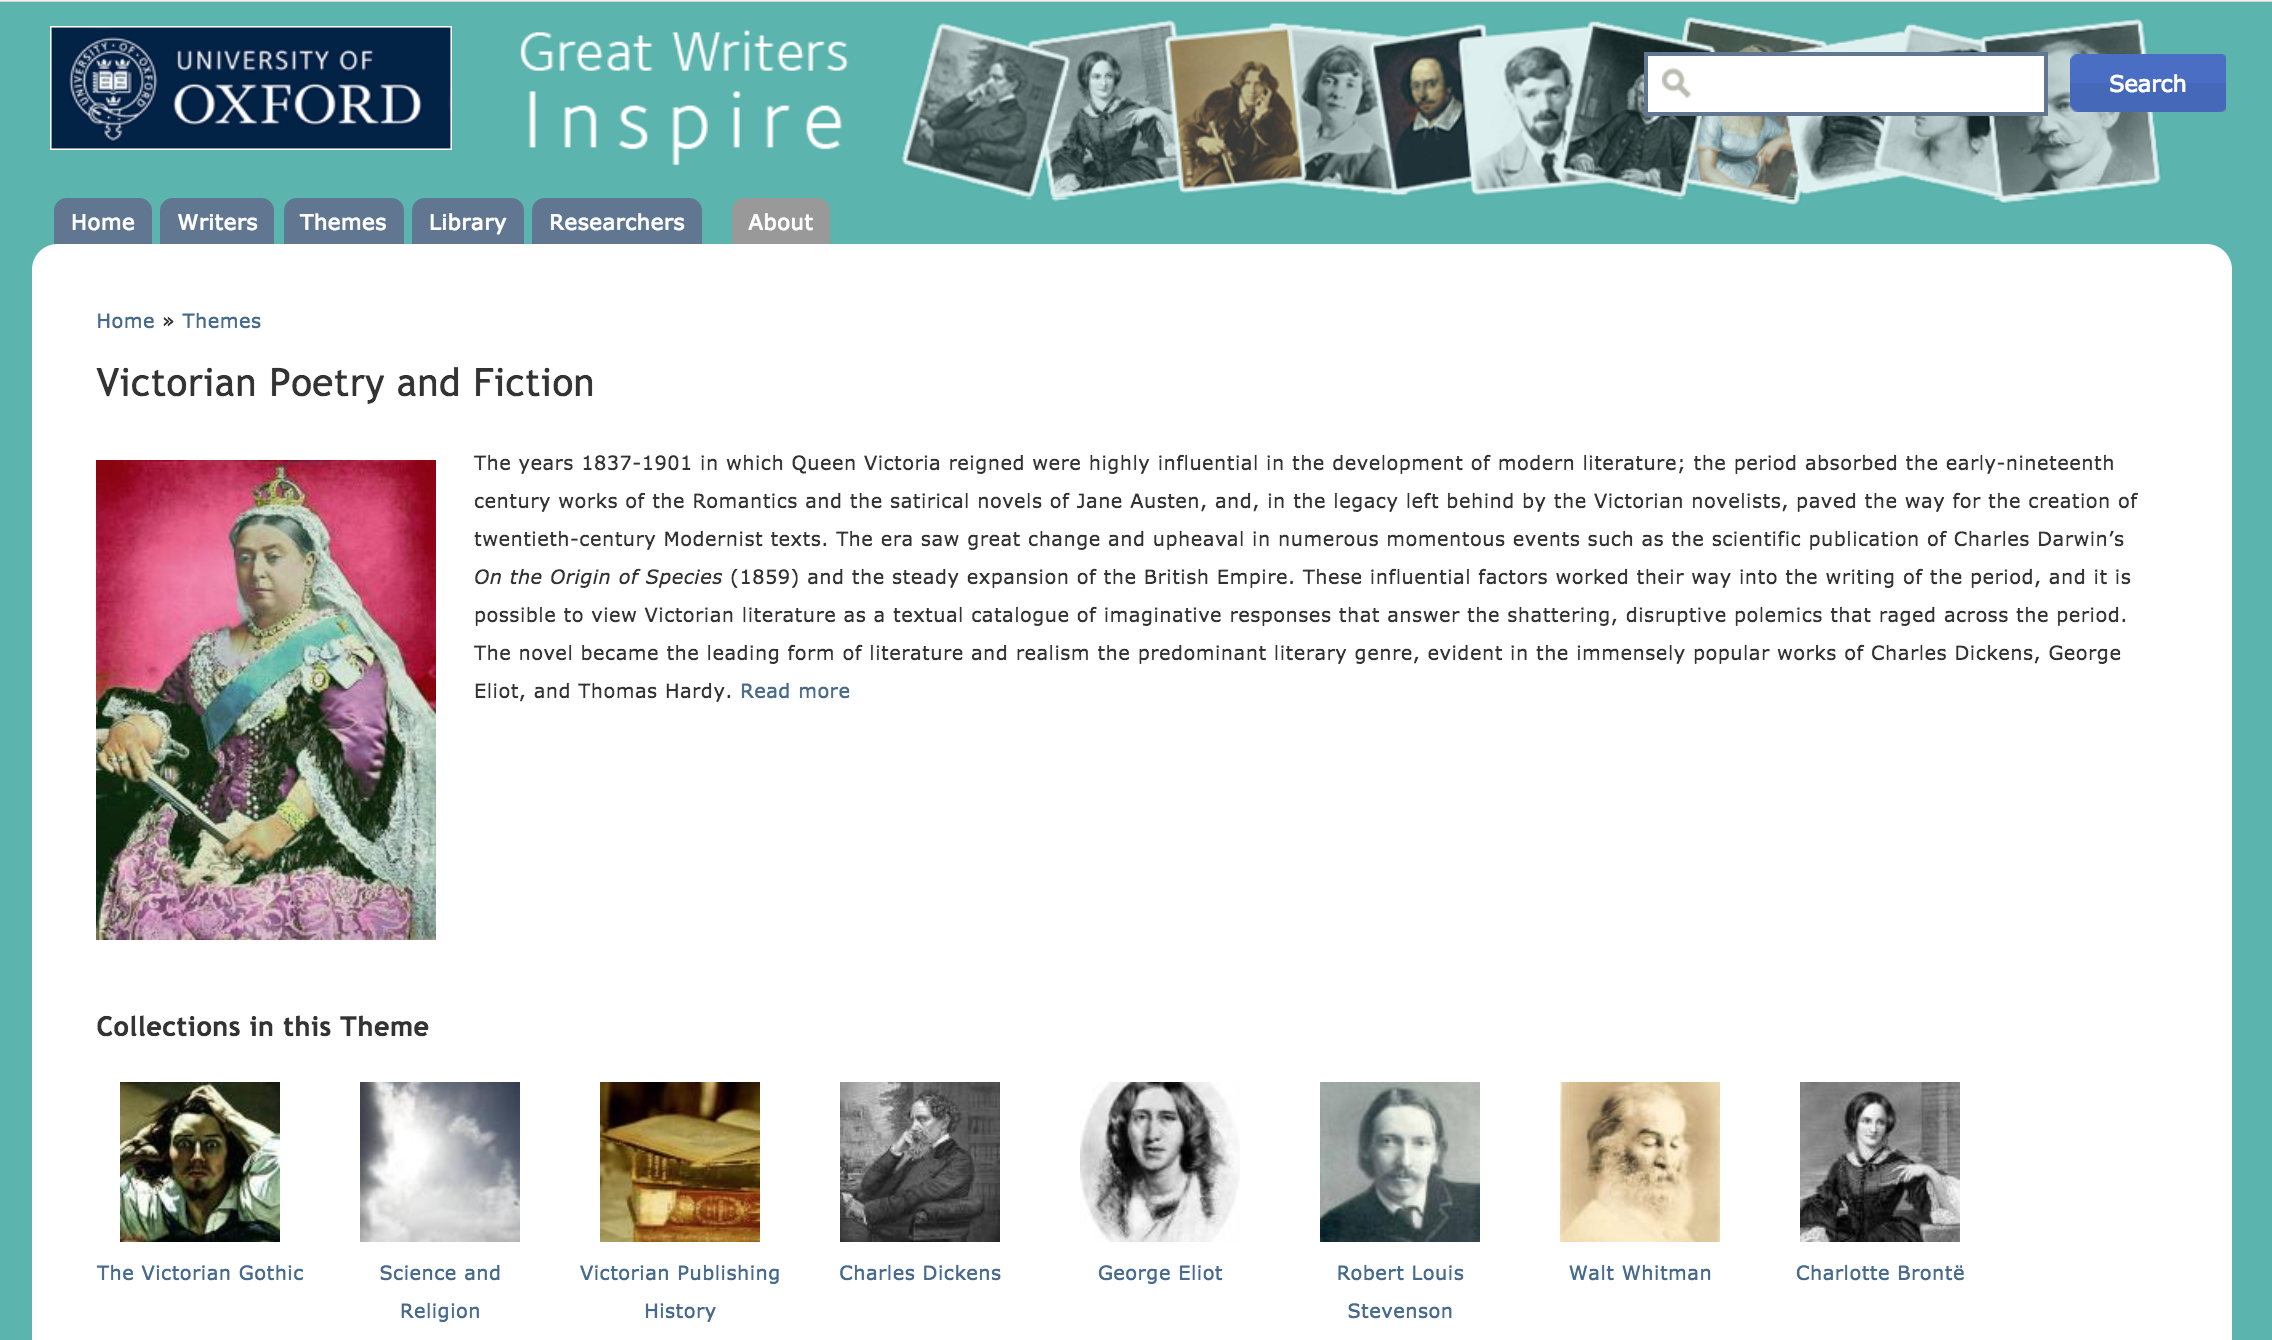 Home Page of the Great Writers Inspire section on Victorian Poetry and Fiction